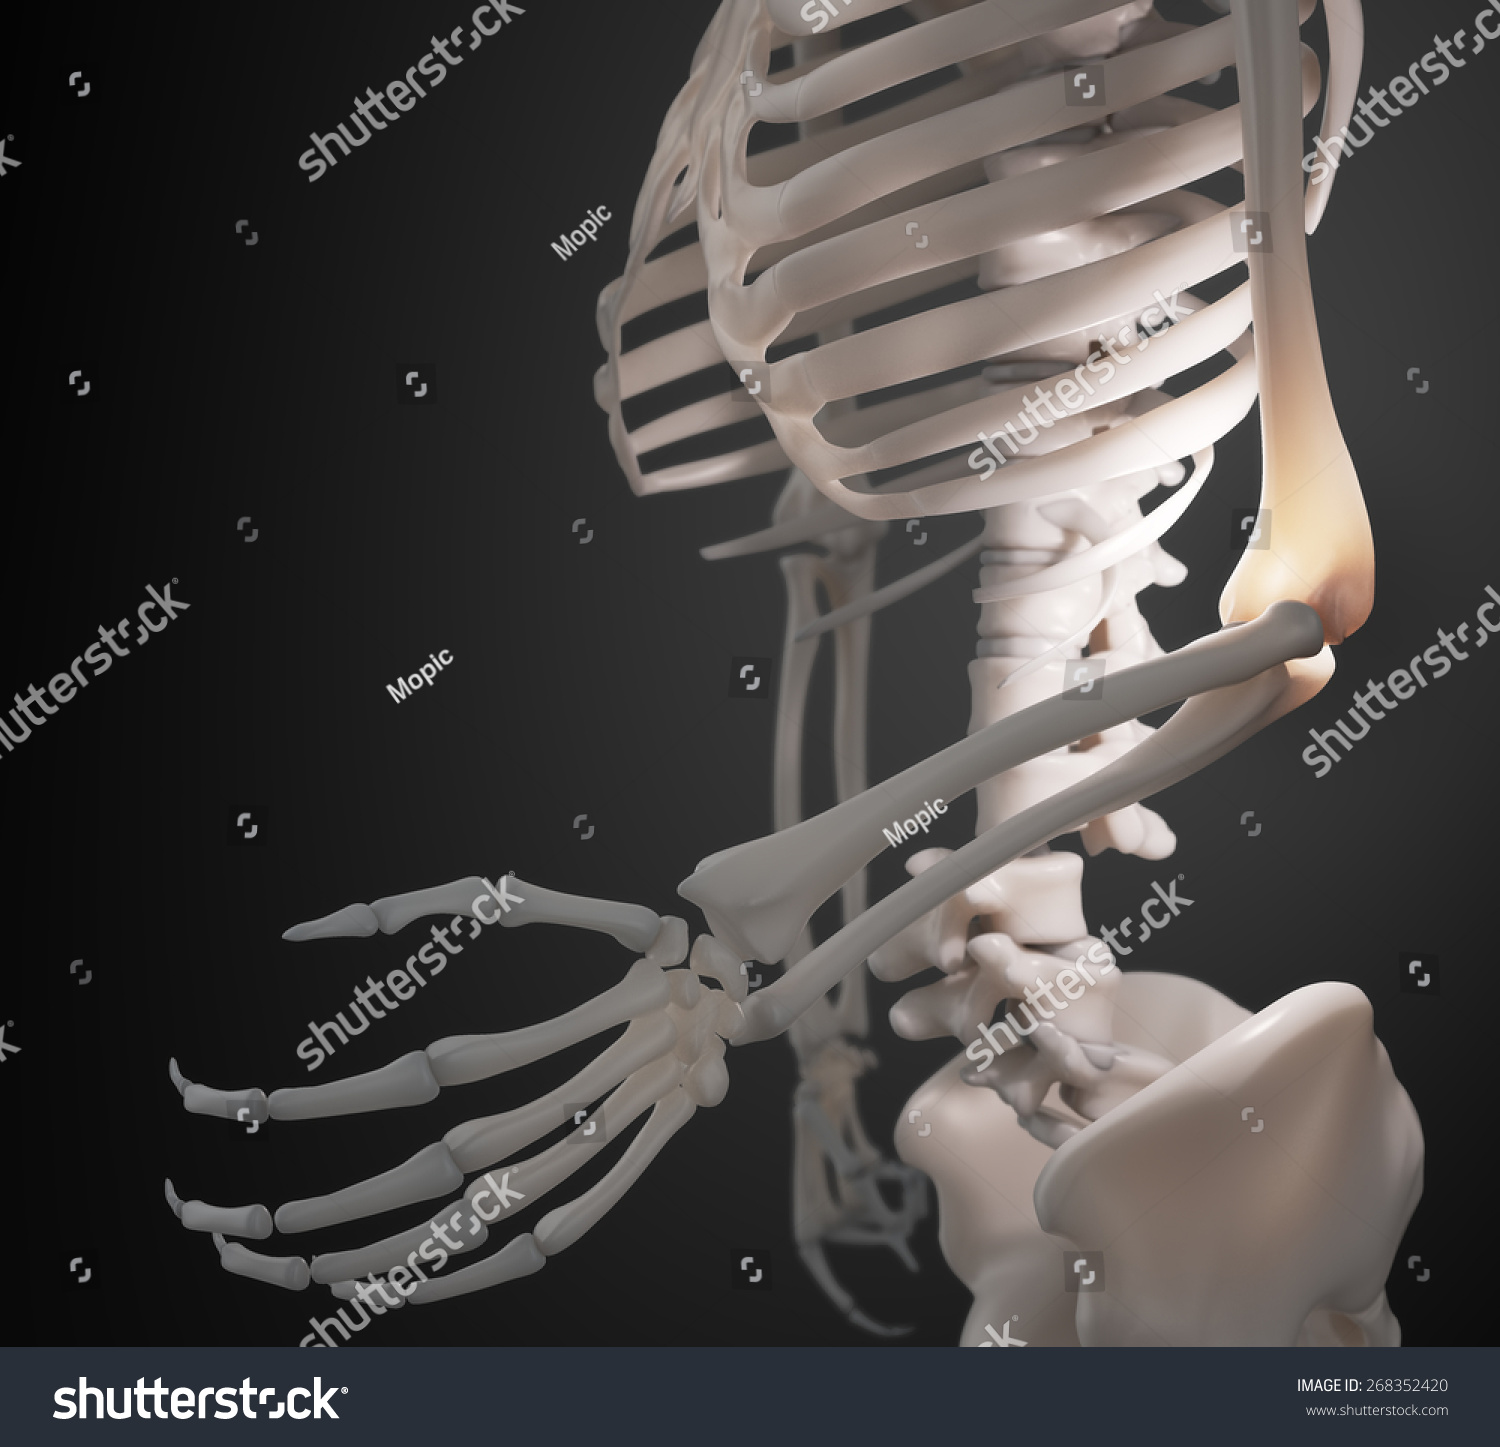 Royalty Free Stock Illustration of Human Skeleton Arm Elbow Anatomy ...